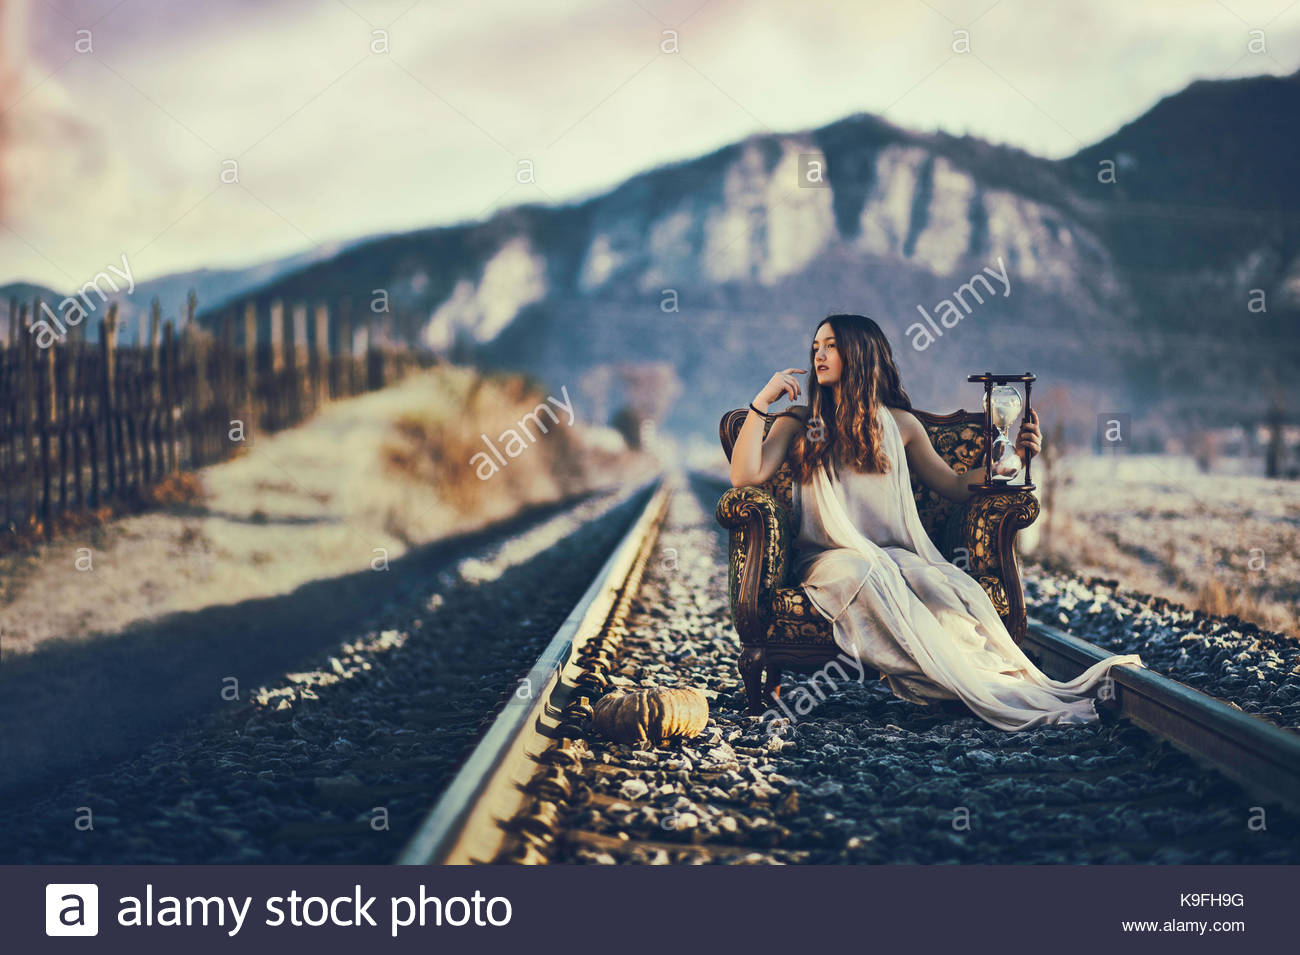 Girl sitting on an armchair on a railway, holding an hourglass - Stock Image